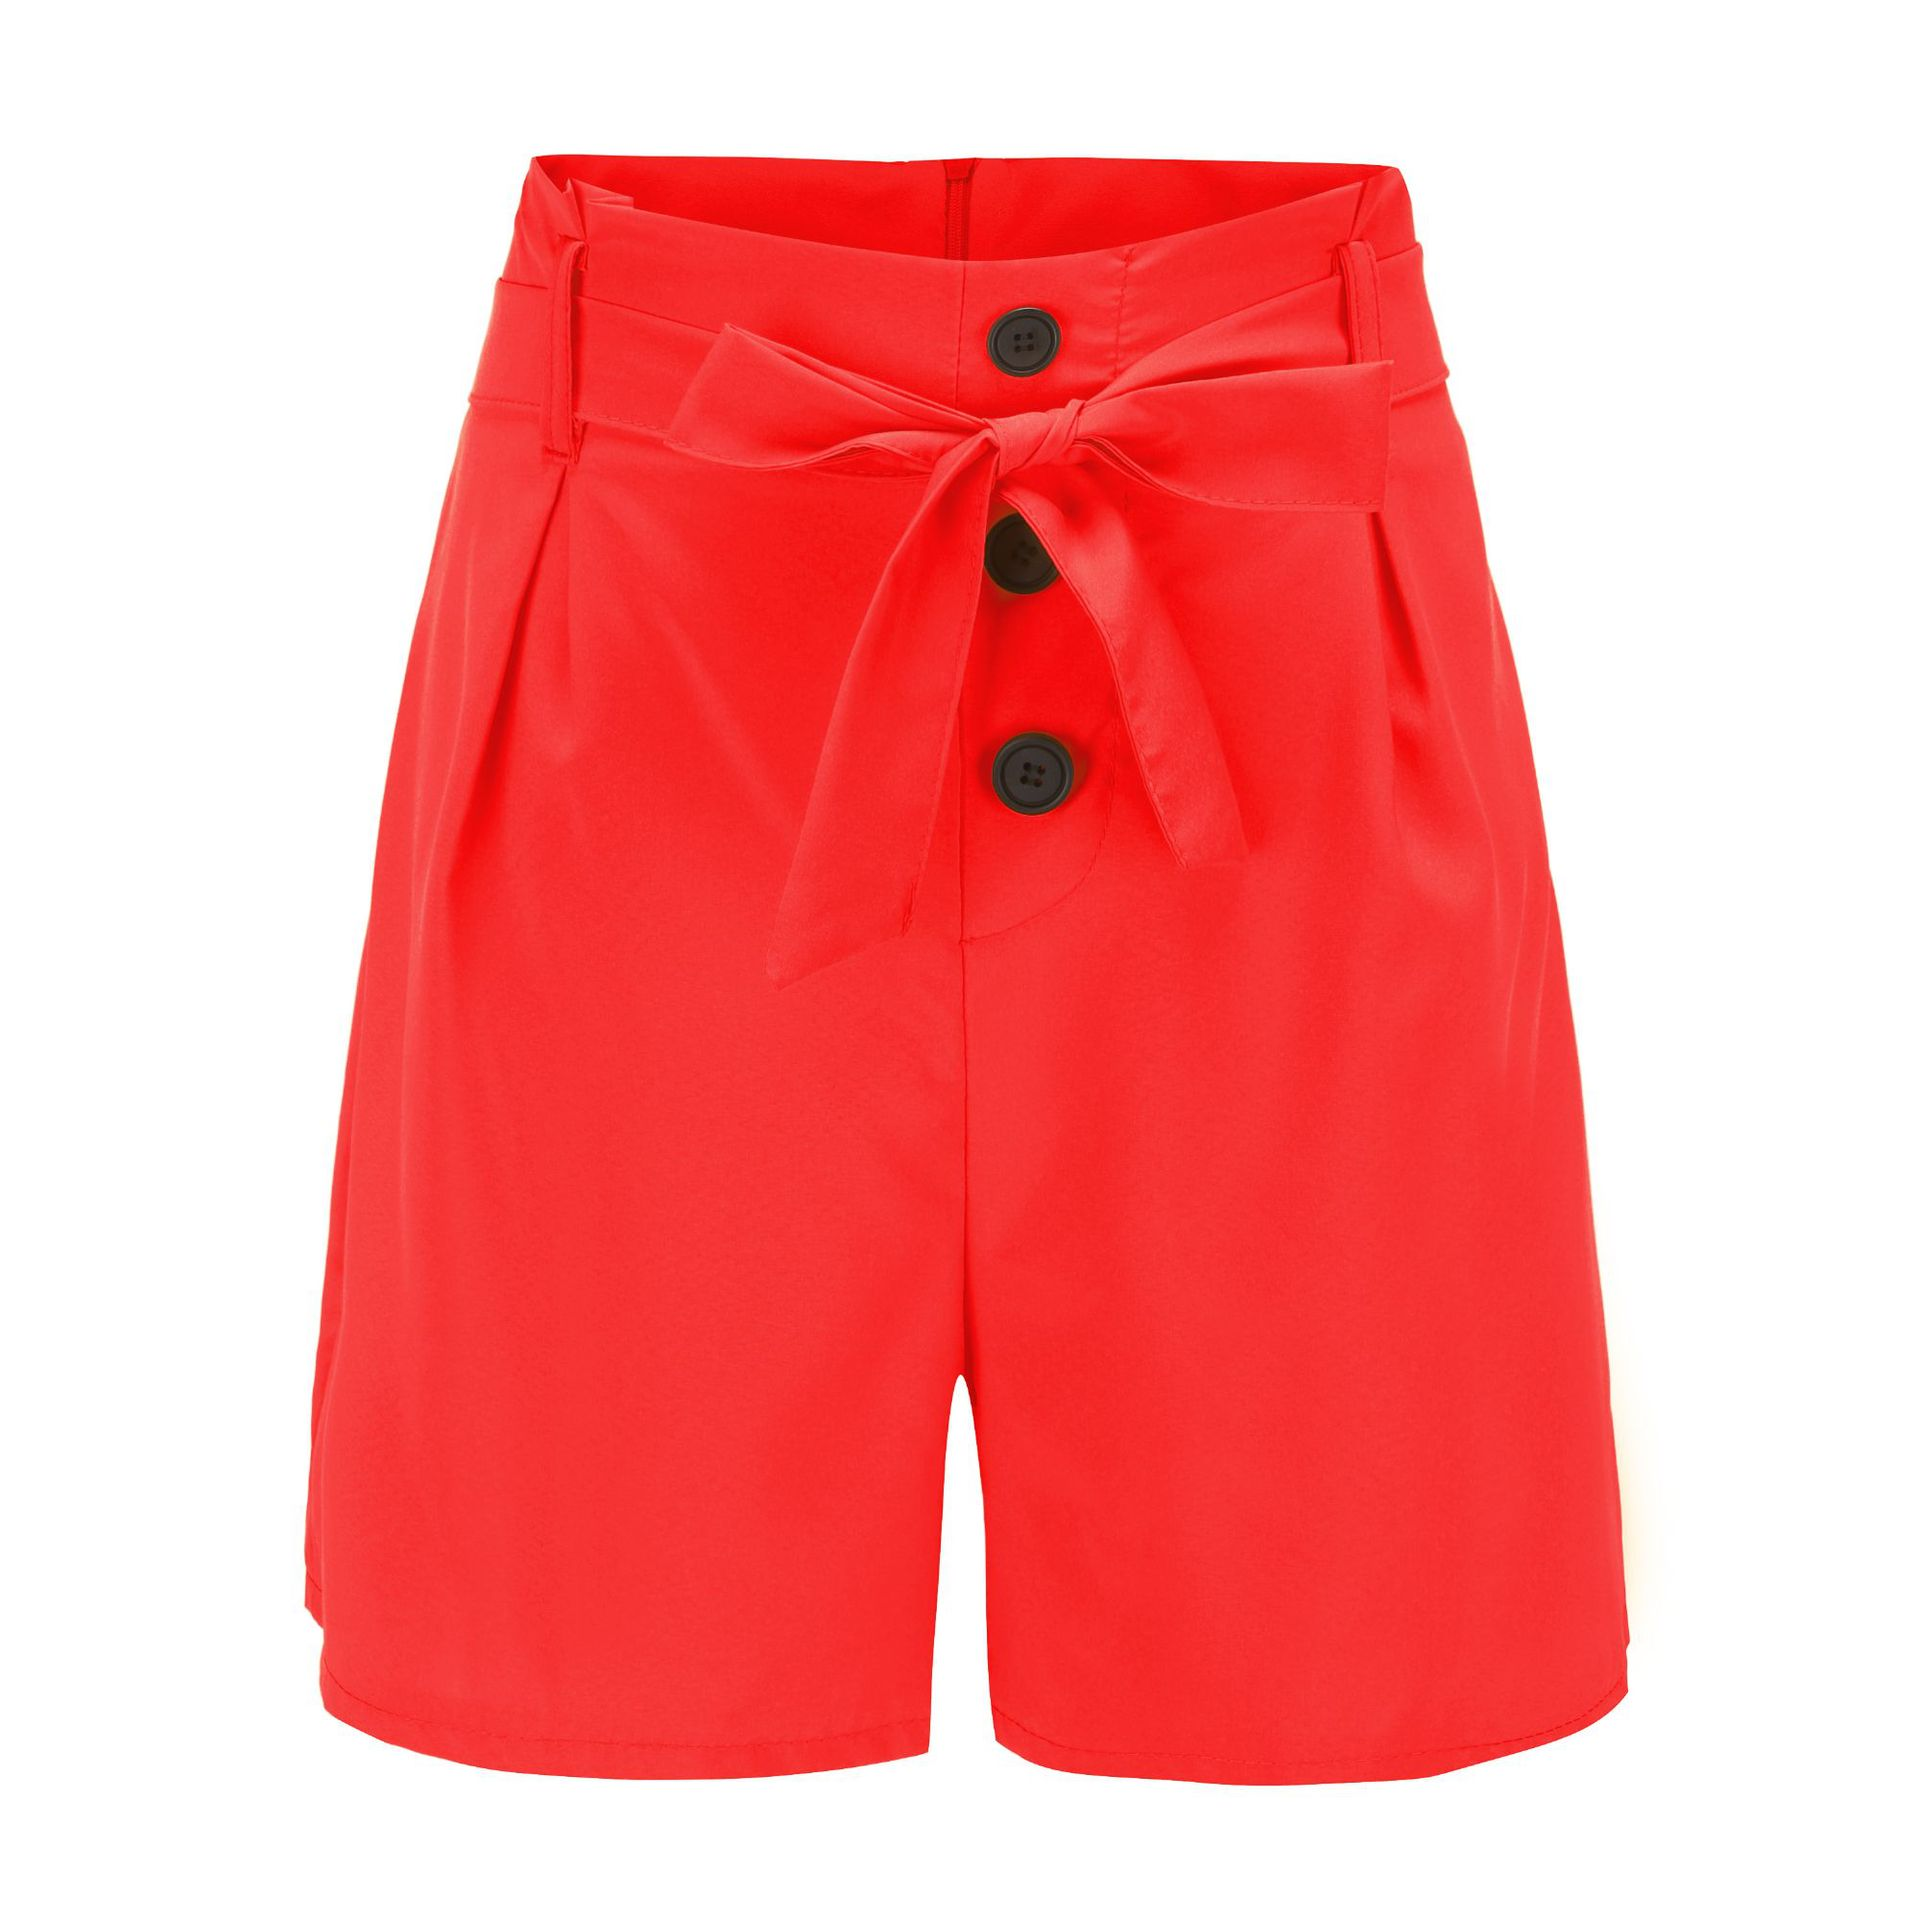 ONCE Women Shorts High Waist Buttons Sashes Elegant  Summer Zip-Up Skinny Shorts Solid Plus Size Pockets Summer Casual Shorts 8